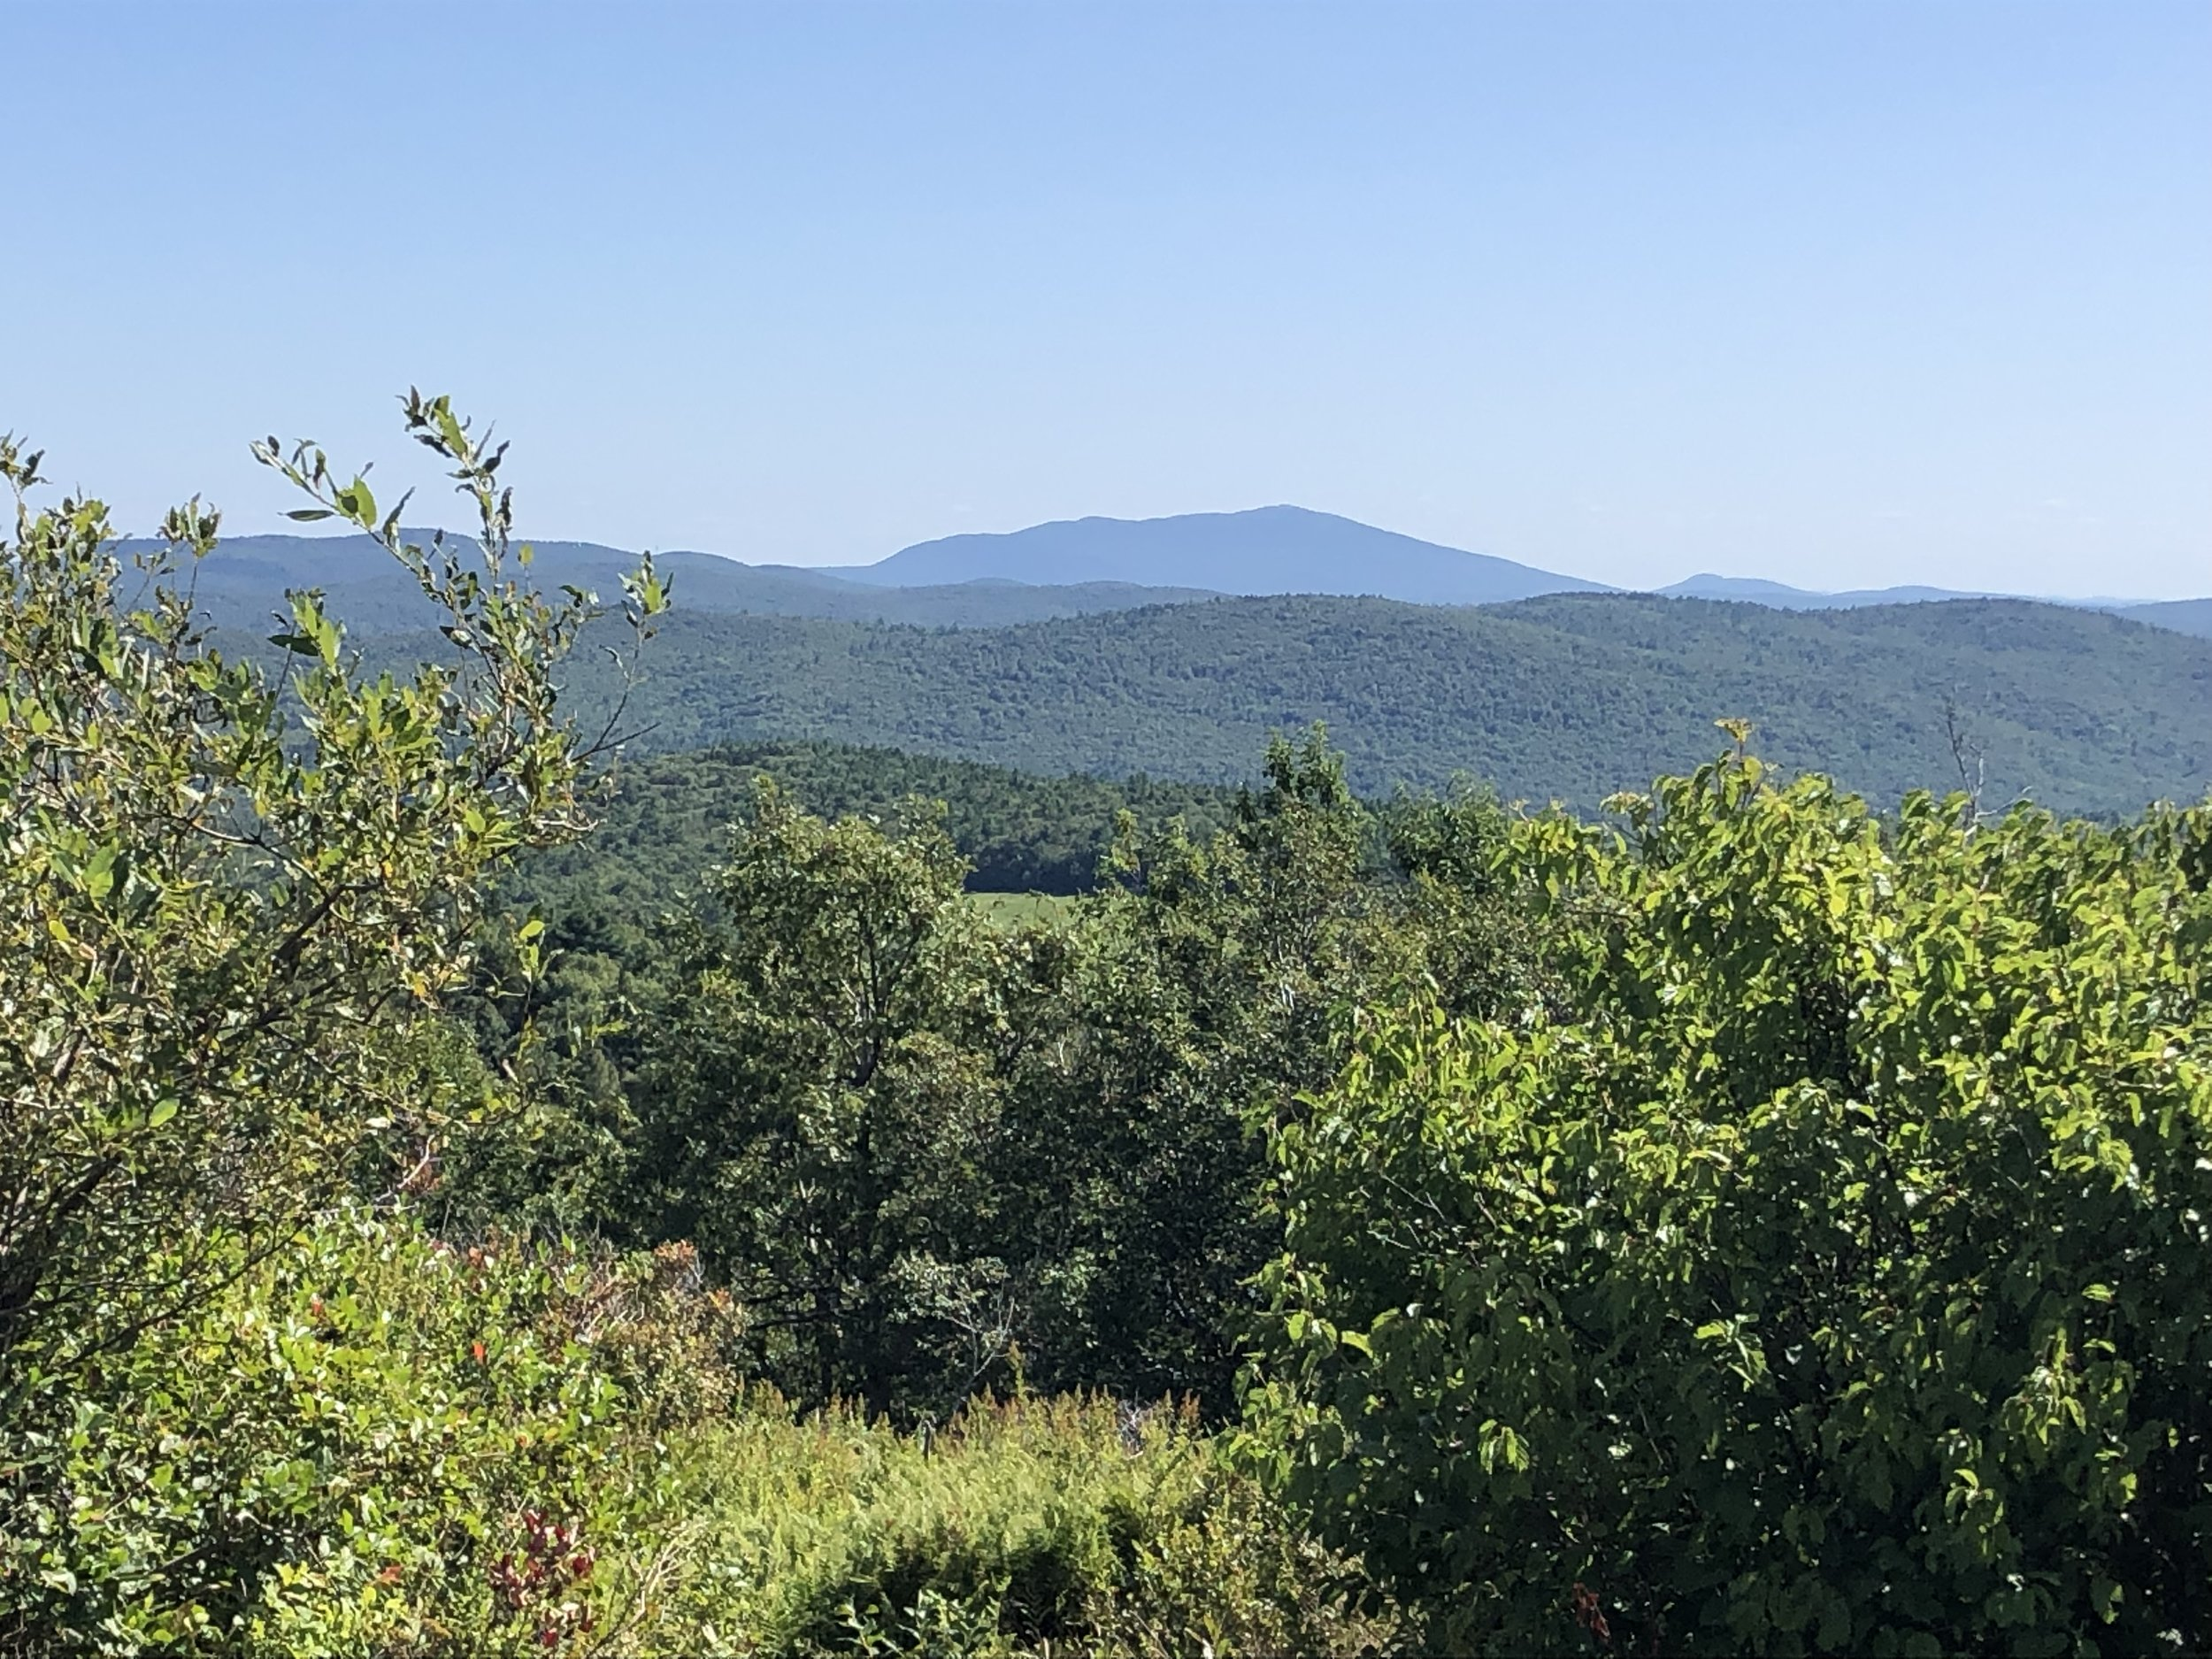 Mount Monadnock to the south